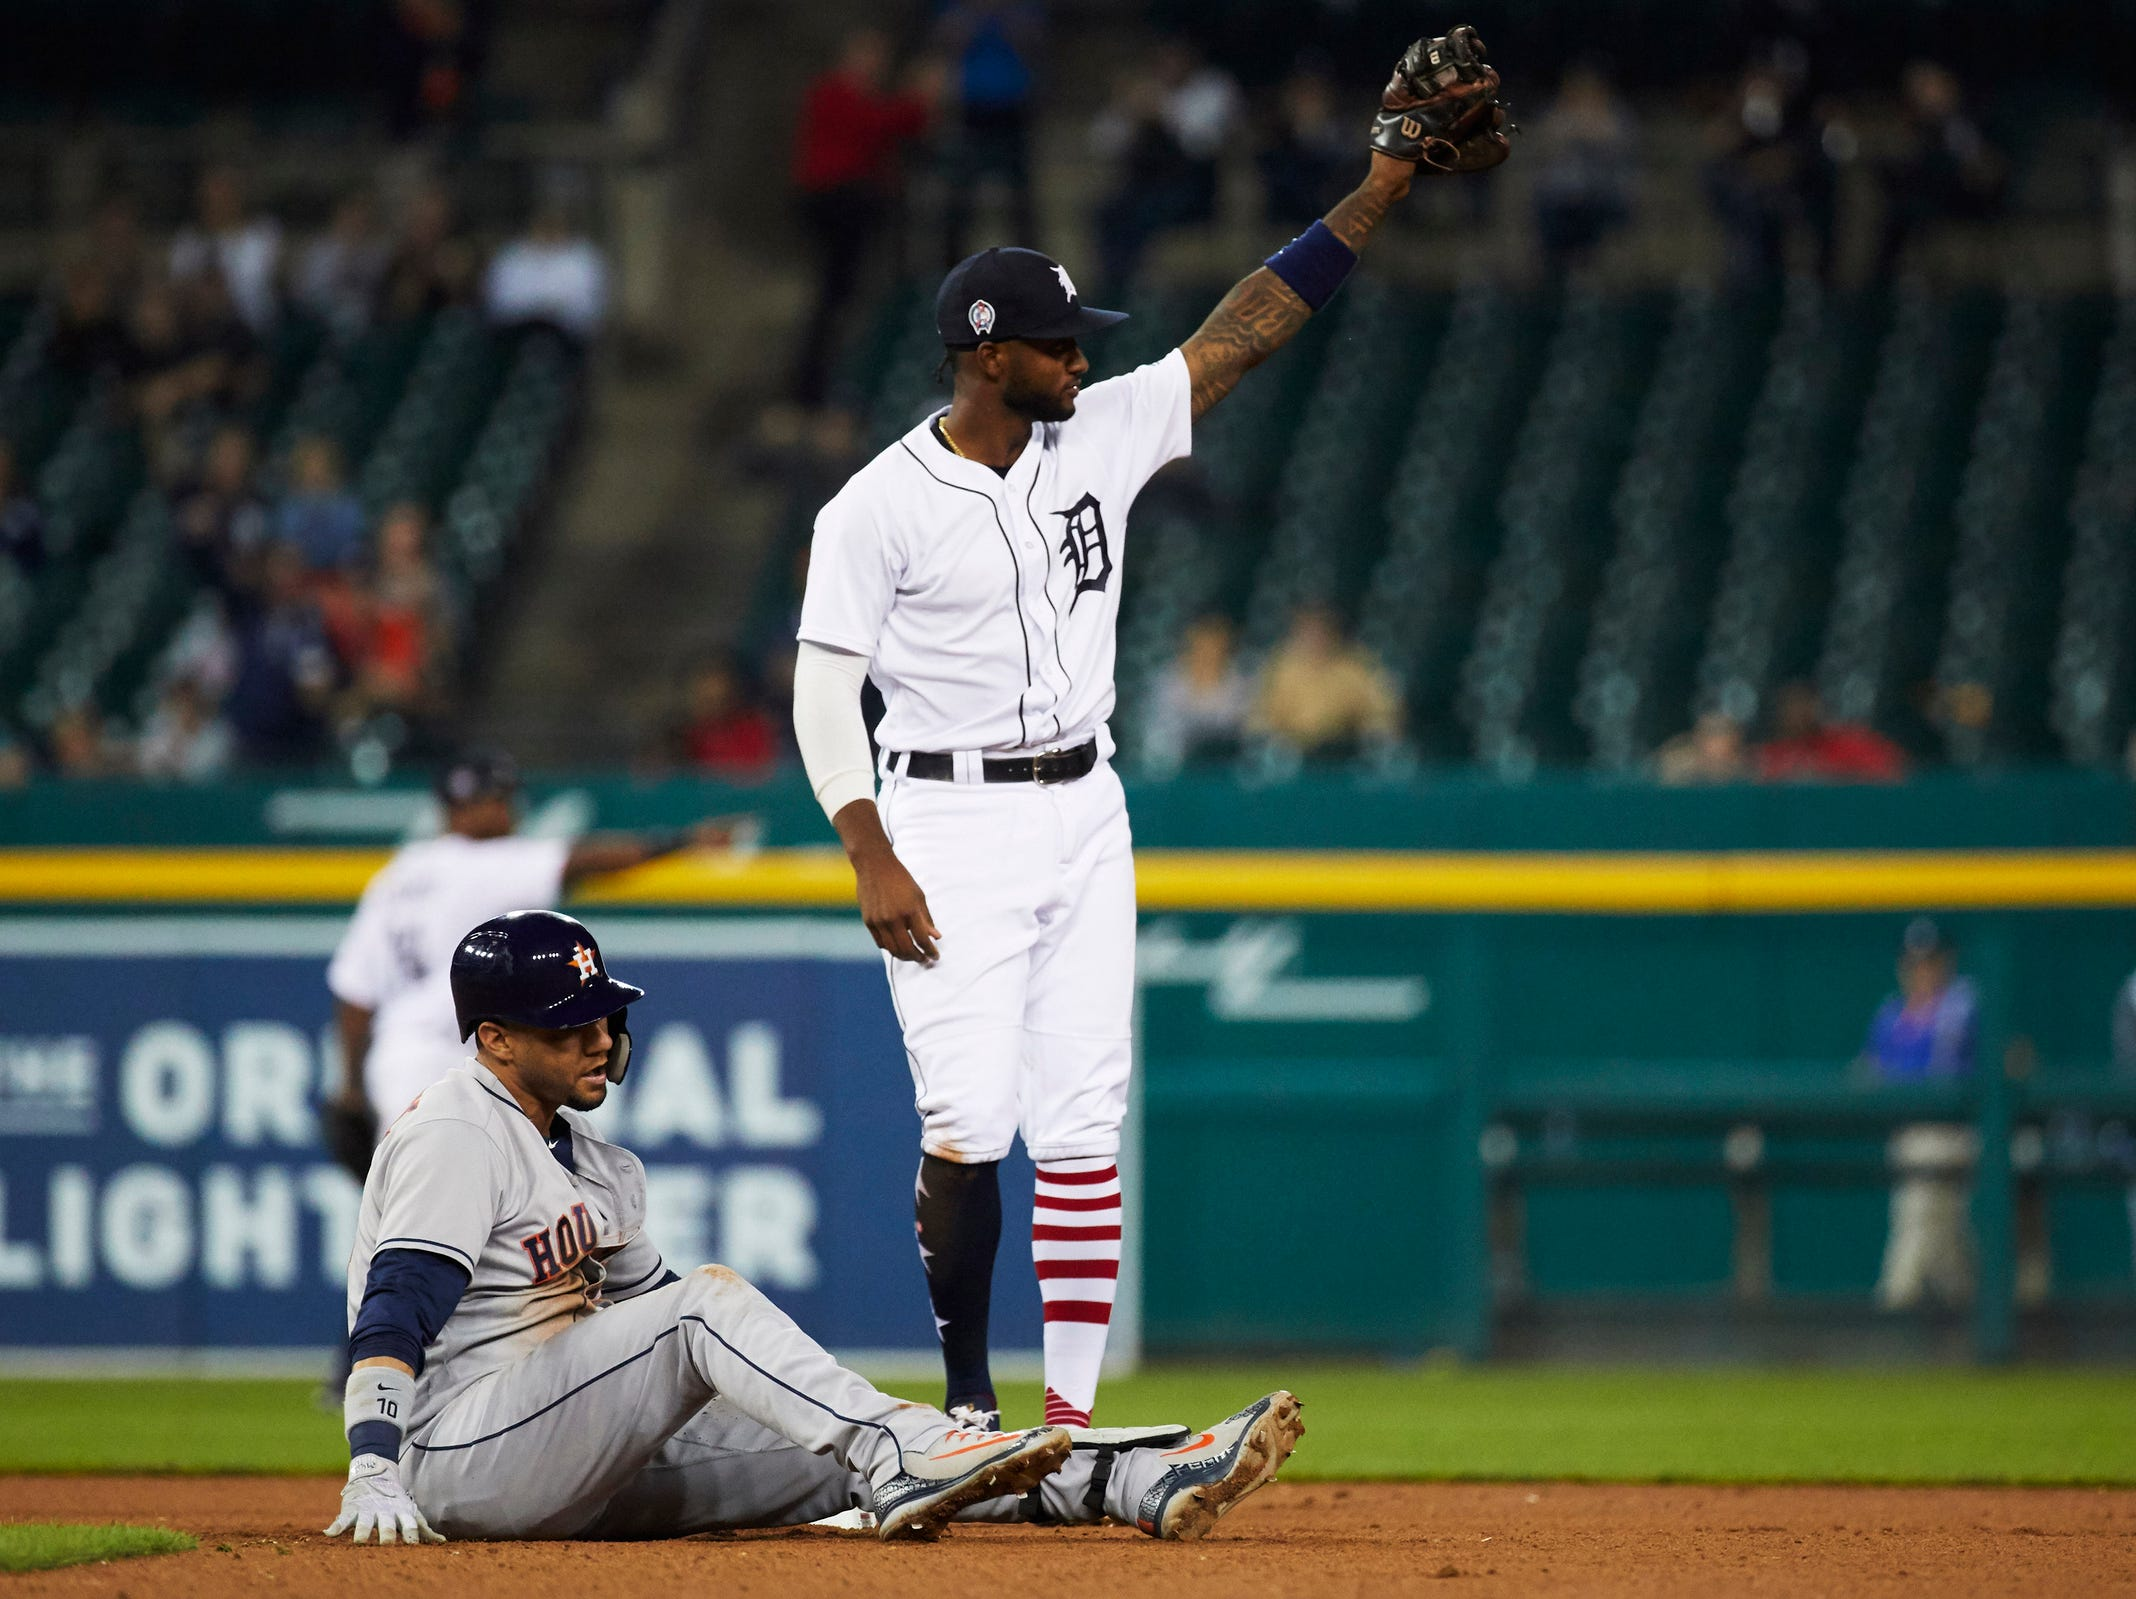 Detroit Tigers shortstop Niko Goodrum (28) points out towards center fielder JaCoby Jones (not pictured) after he throws out Houston Astros first baseman Yuli Gurriel (10) during the ninth inning at second during the ninth inning at Comerica Park, Tuesday, Sept. 11, 2018.